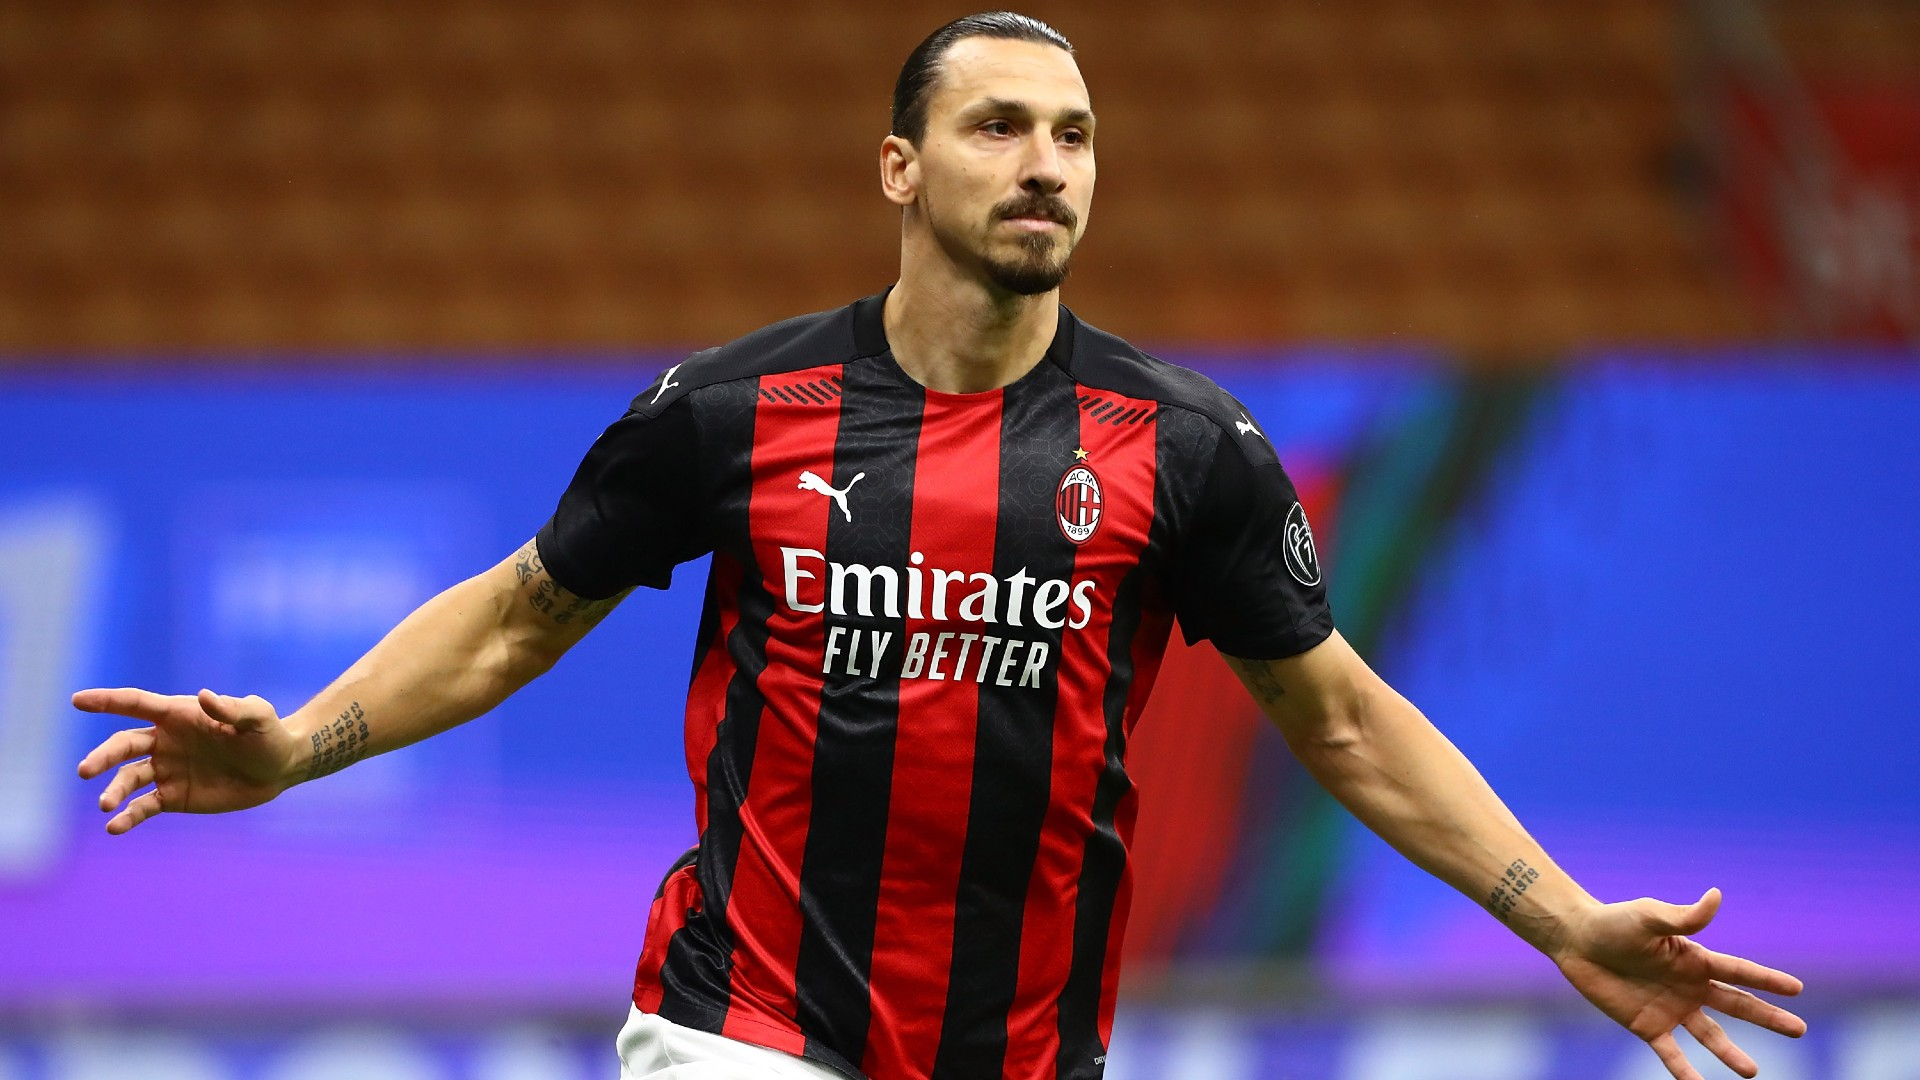 Zlatan Ibrahimović is the only player in history to score for 𝘀𝗶𝘅 different clubs Champions League